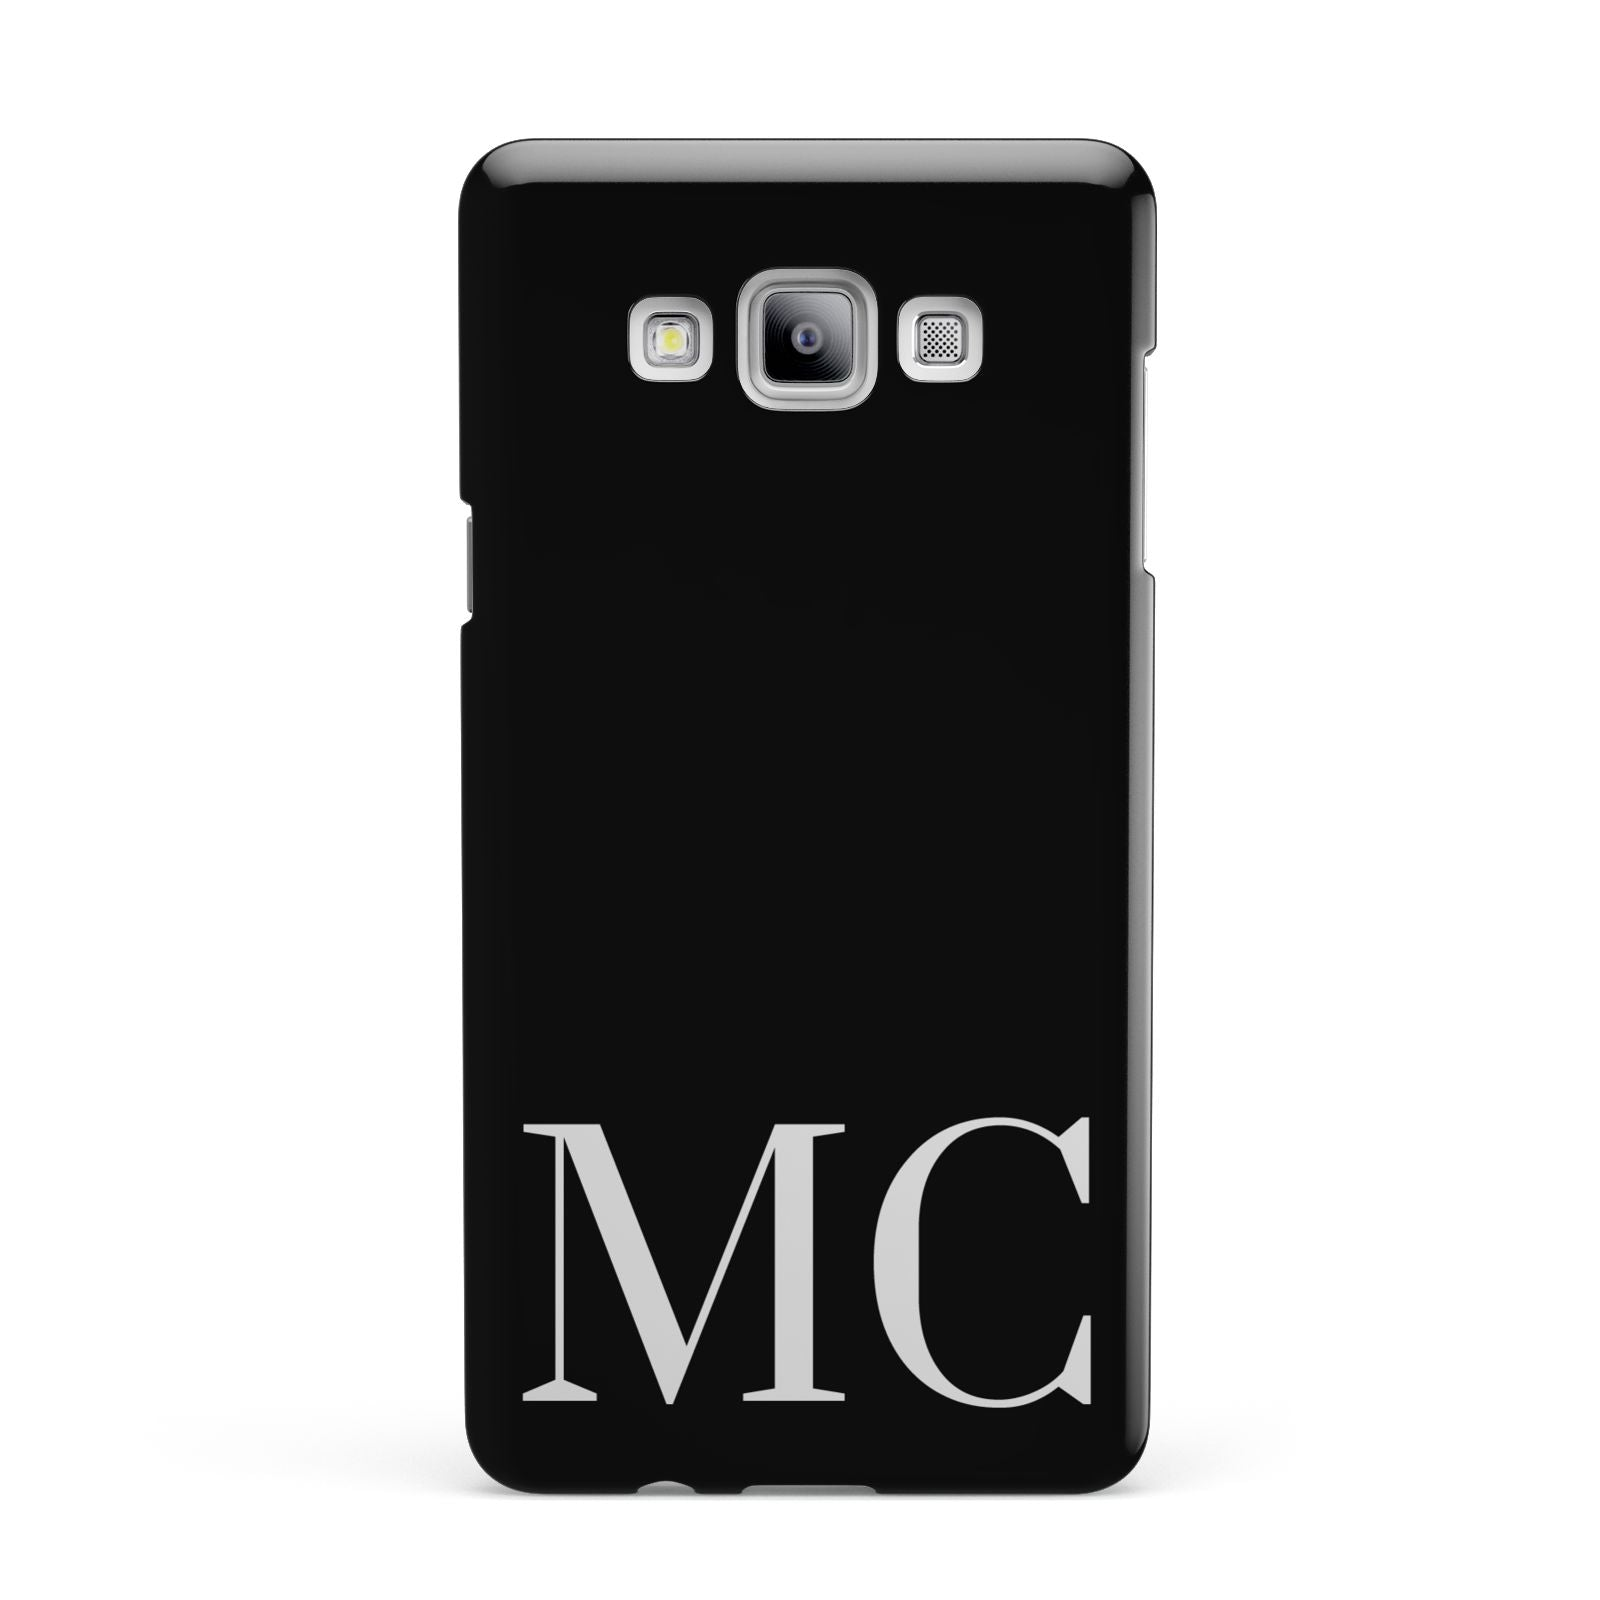 Initials Personalised 1 Samsung Galaxy A7 2015 Case